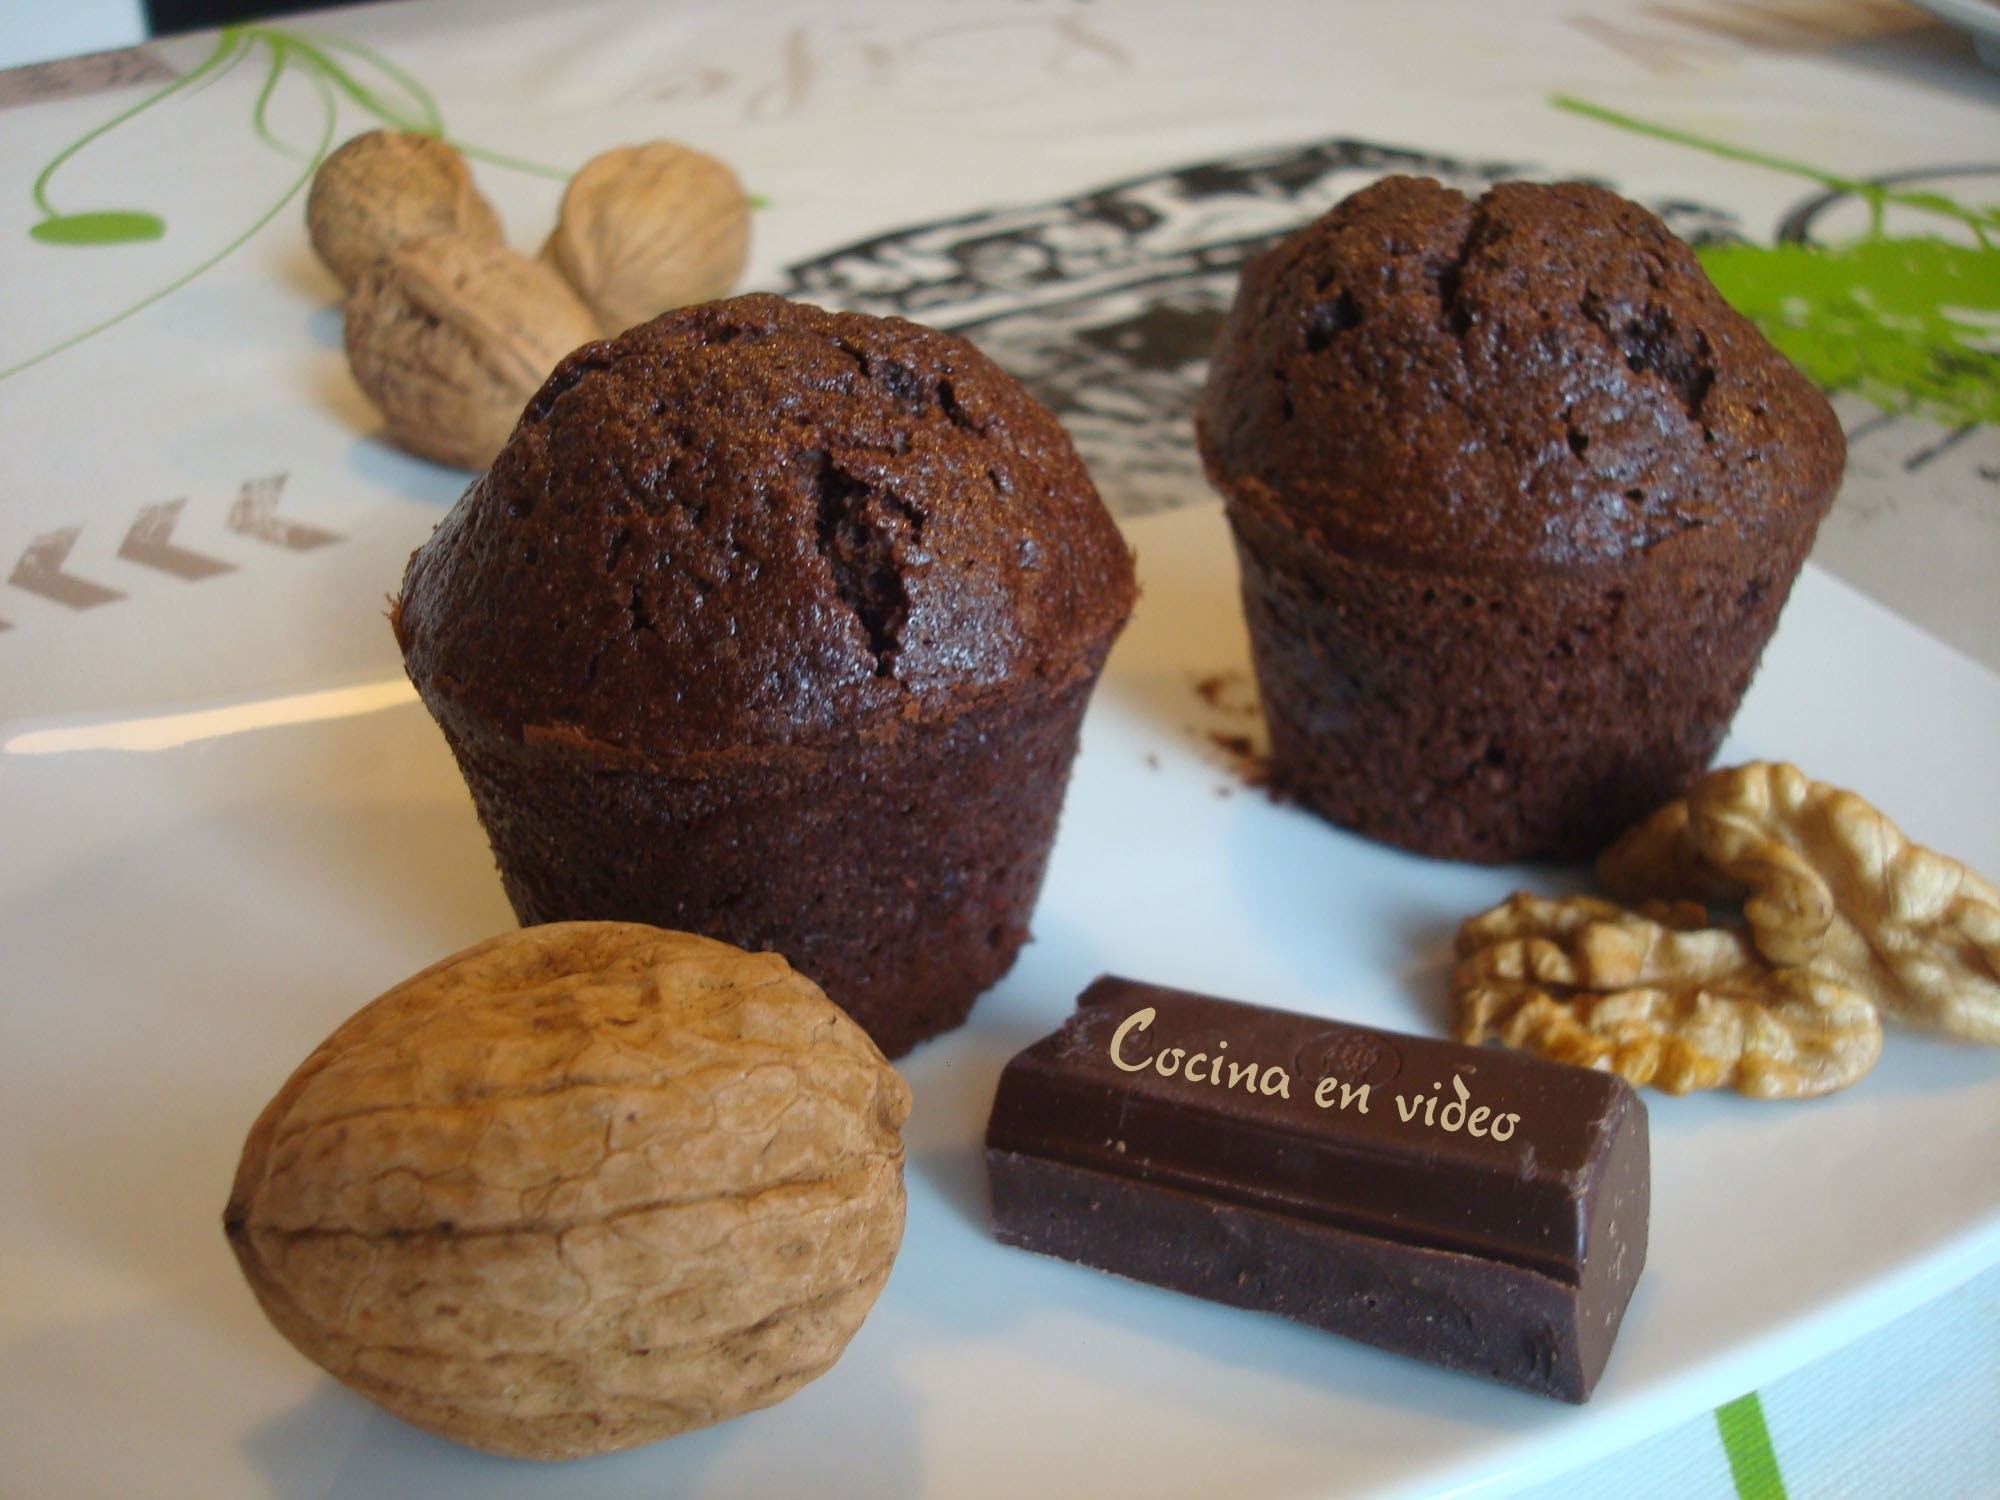 Muffins de chocolate #187 - Muffins with Chocolate - #CocinaEnvideo